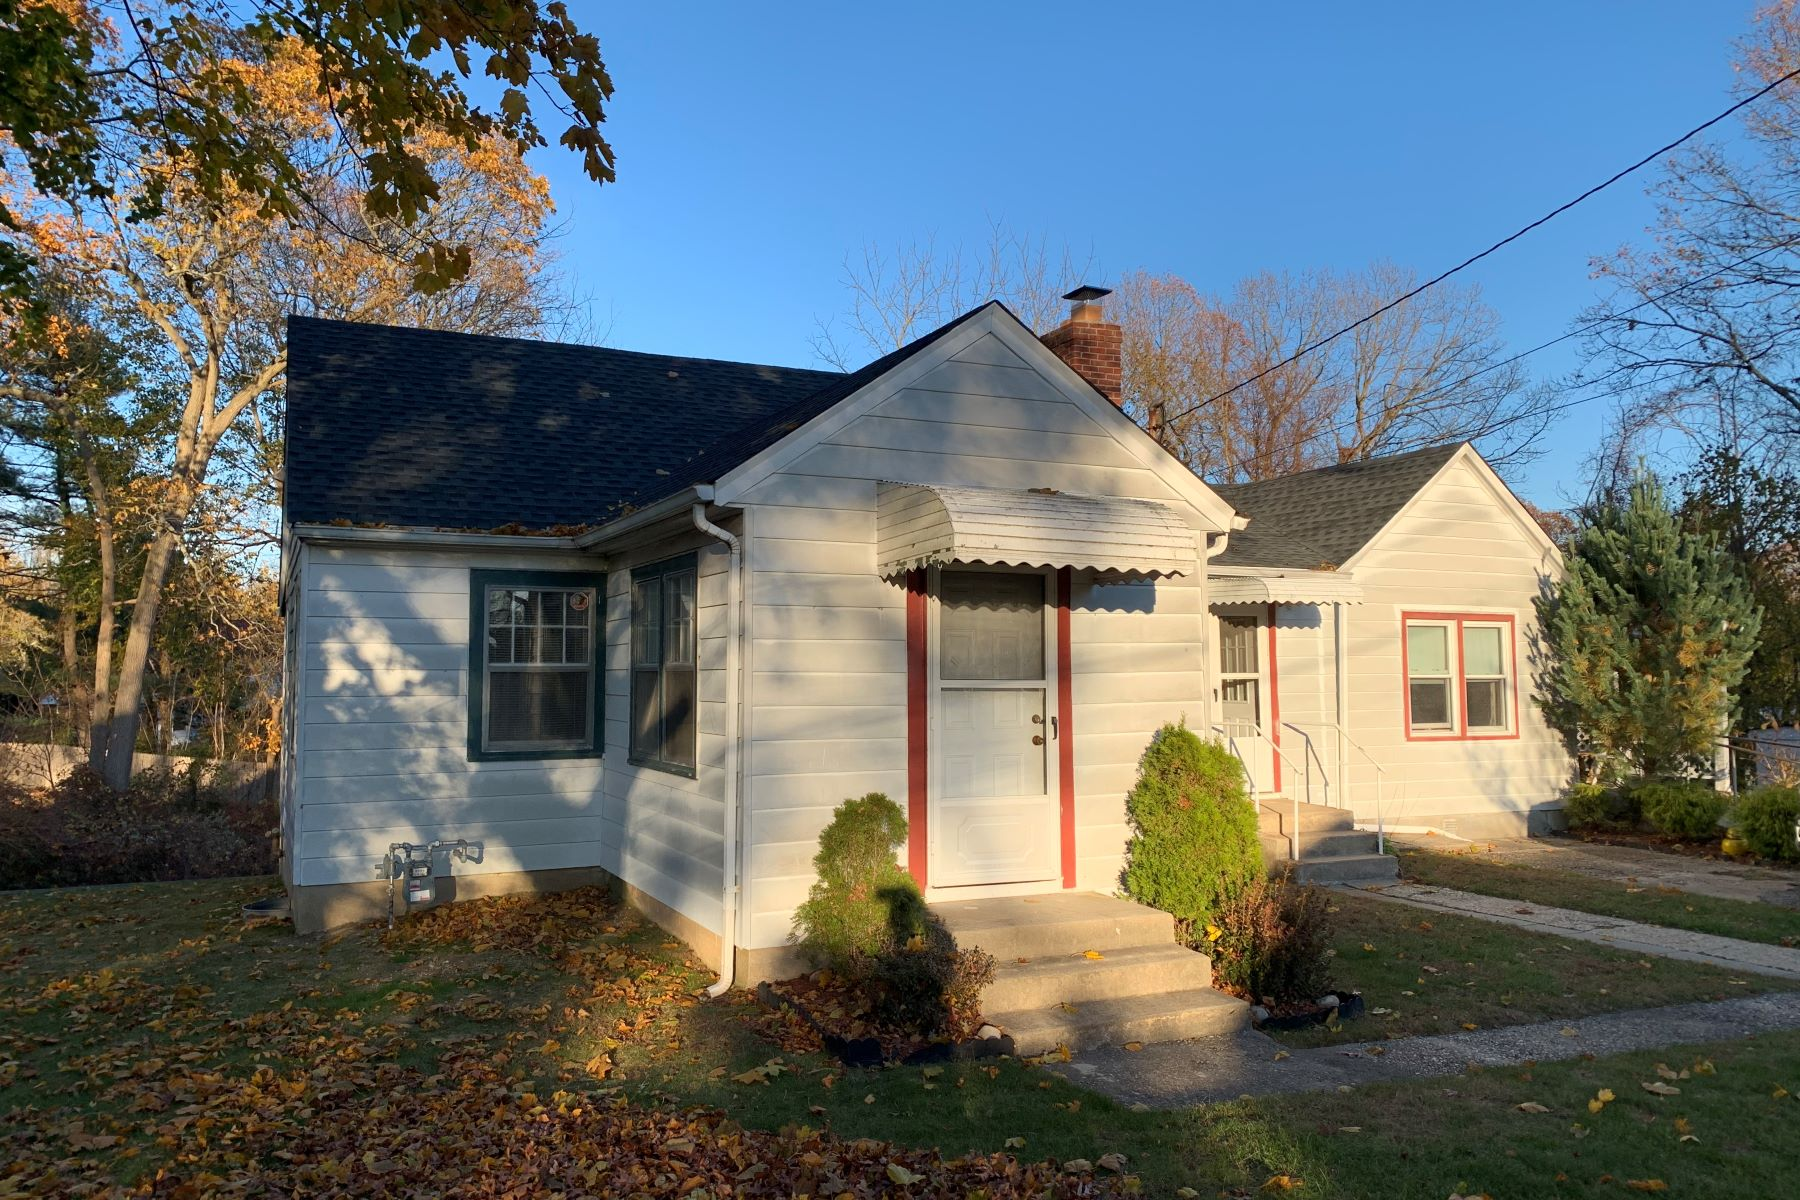 Single Family Homes for Sale at Kings Park 17 Woodland Path Kings Park, New York 11754 United States